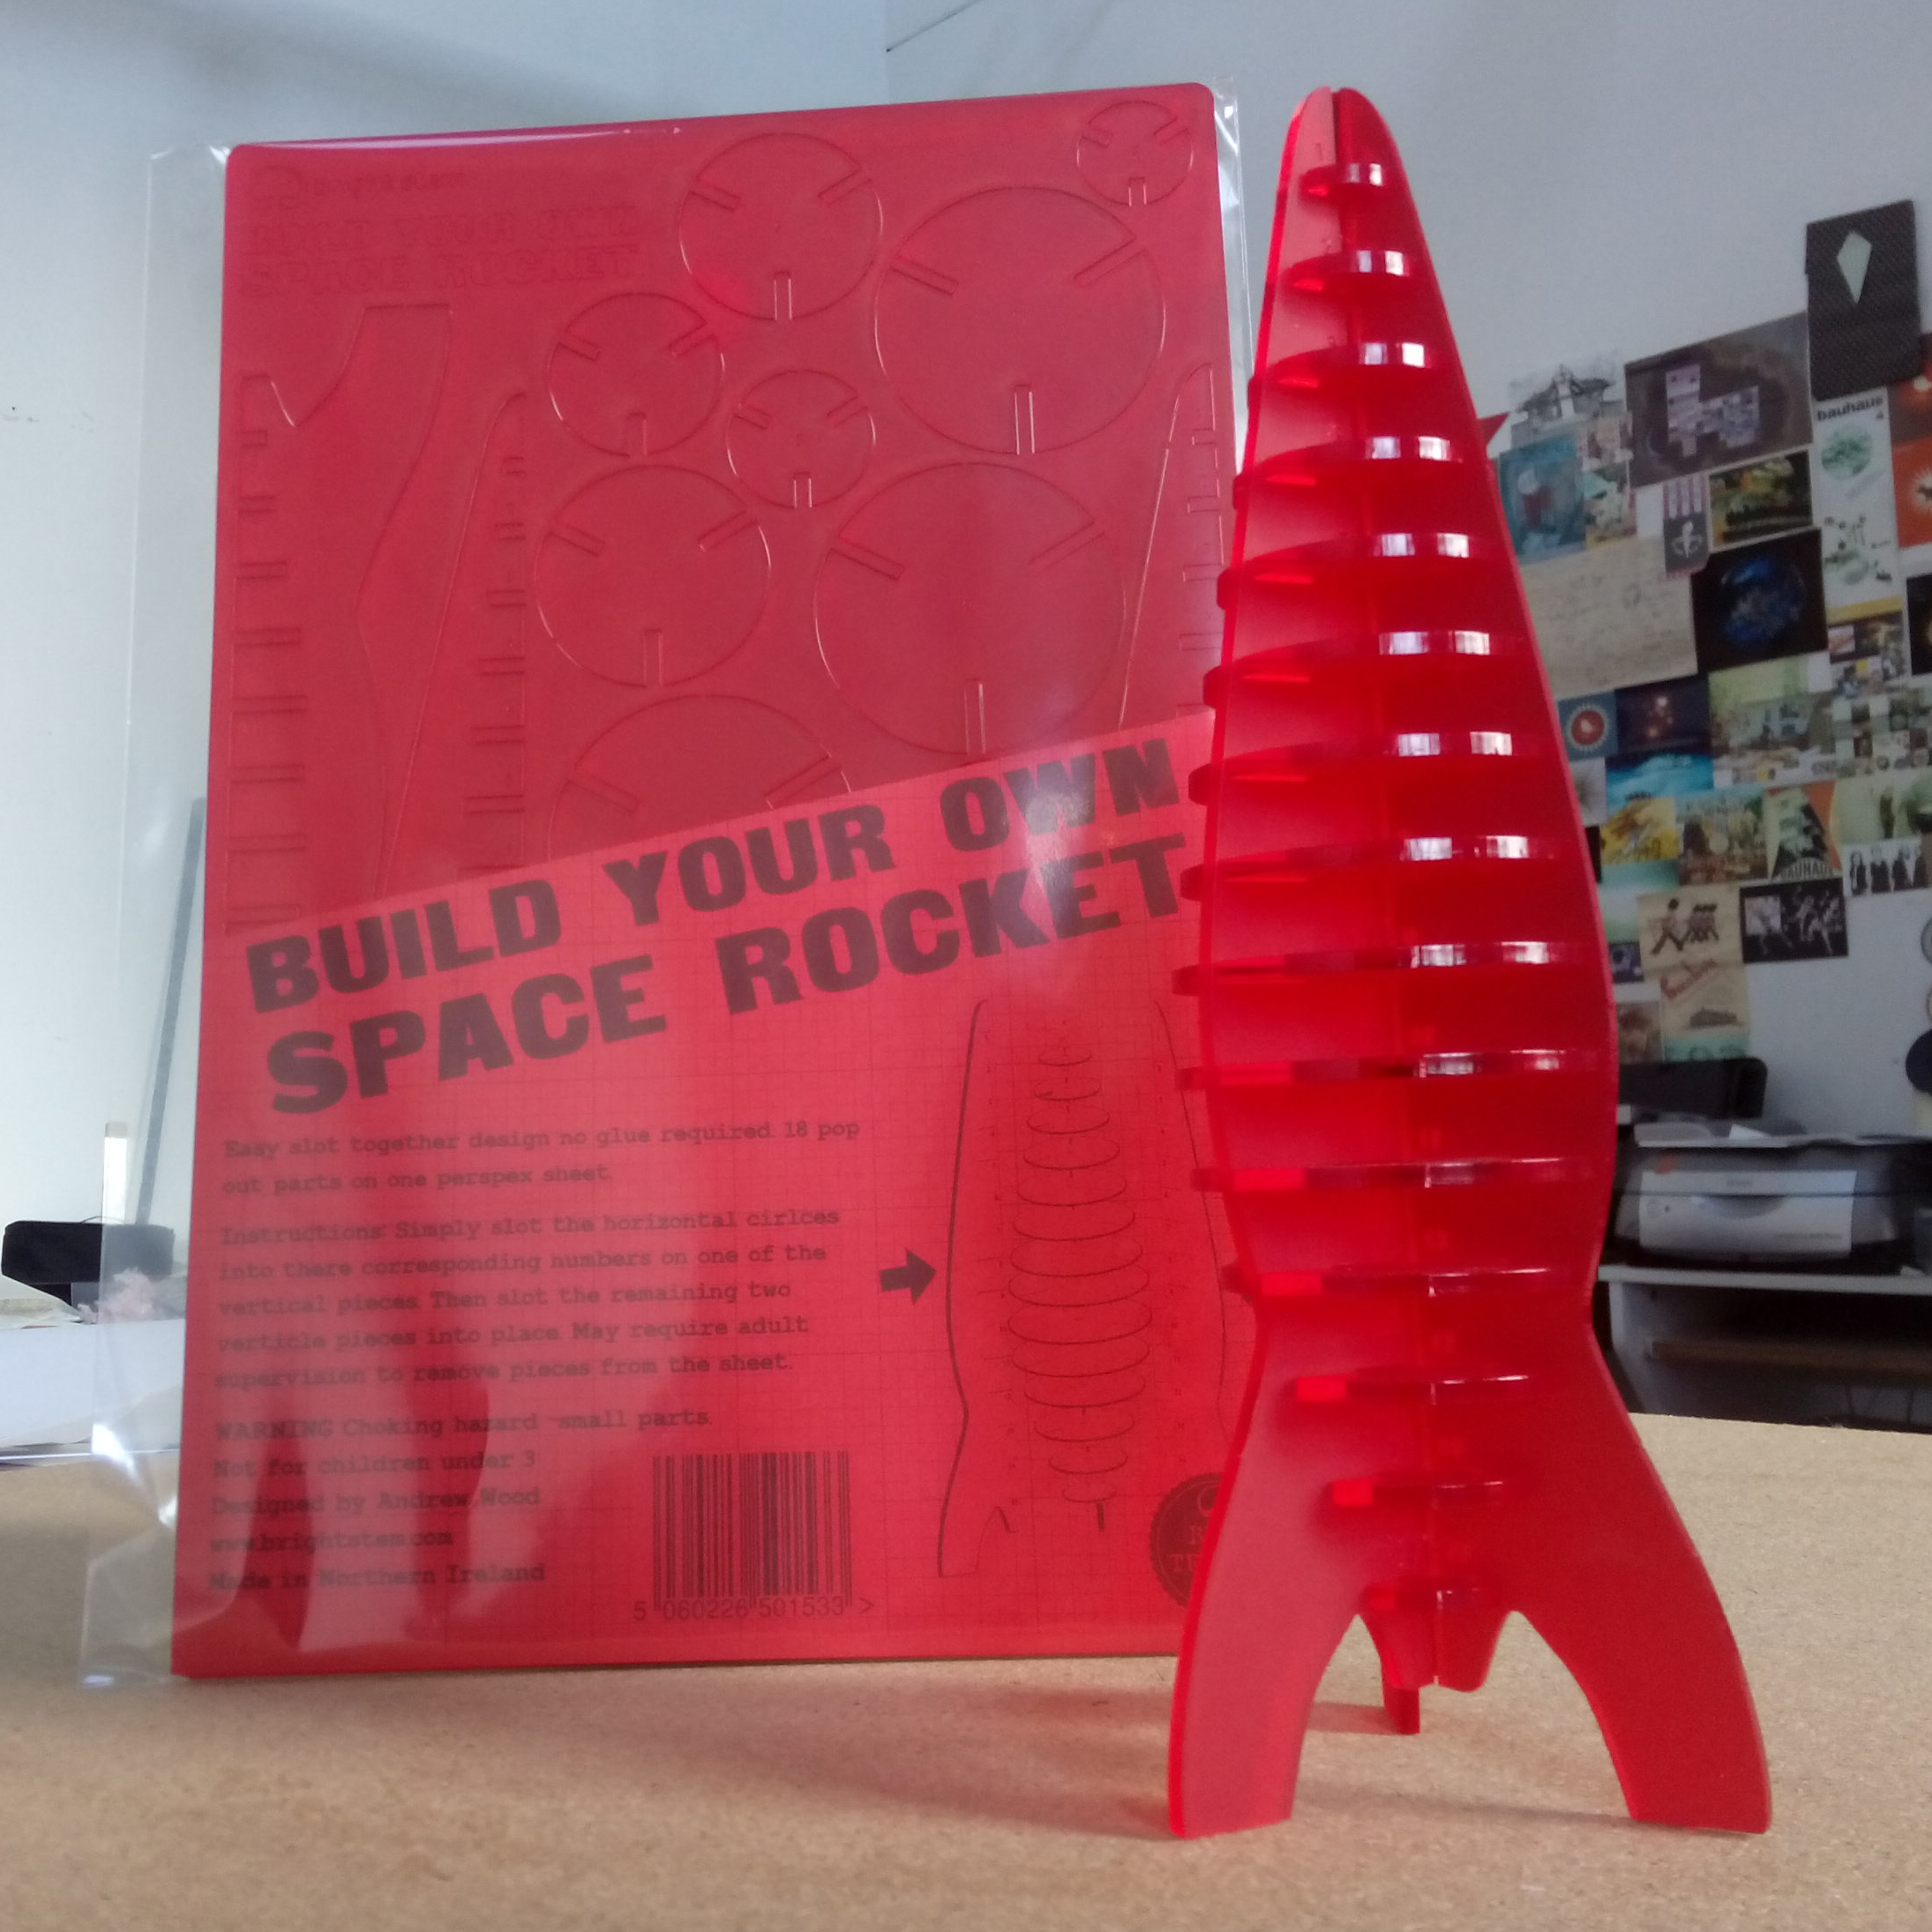 Build your Own Space Rocket